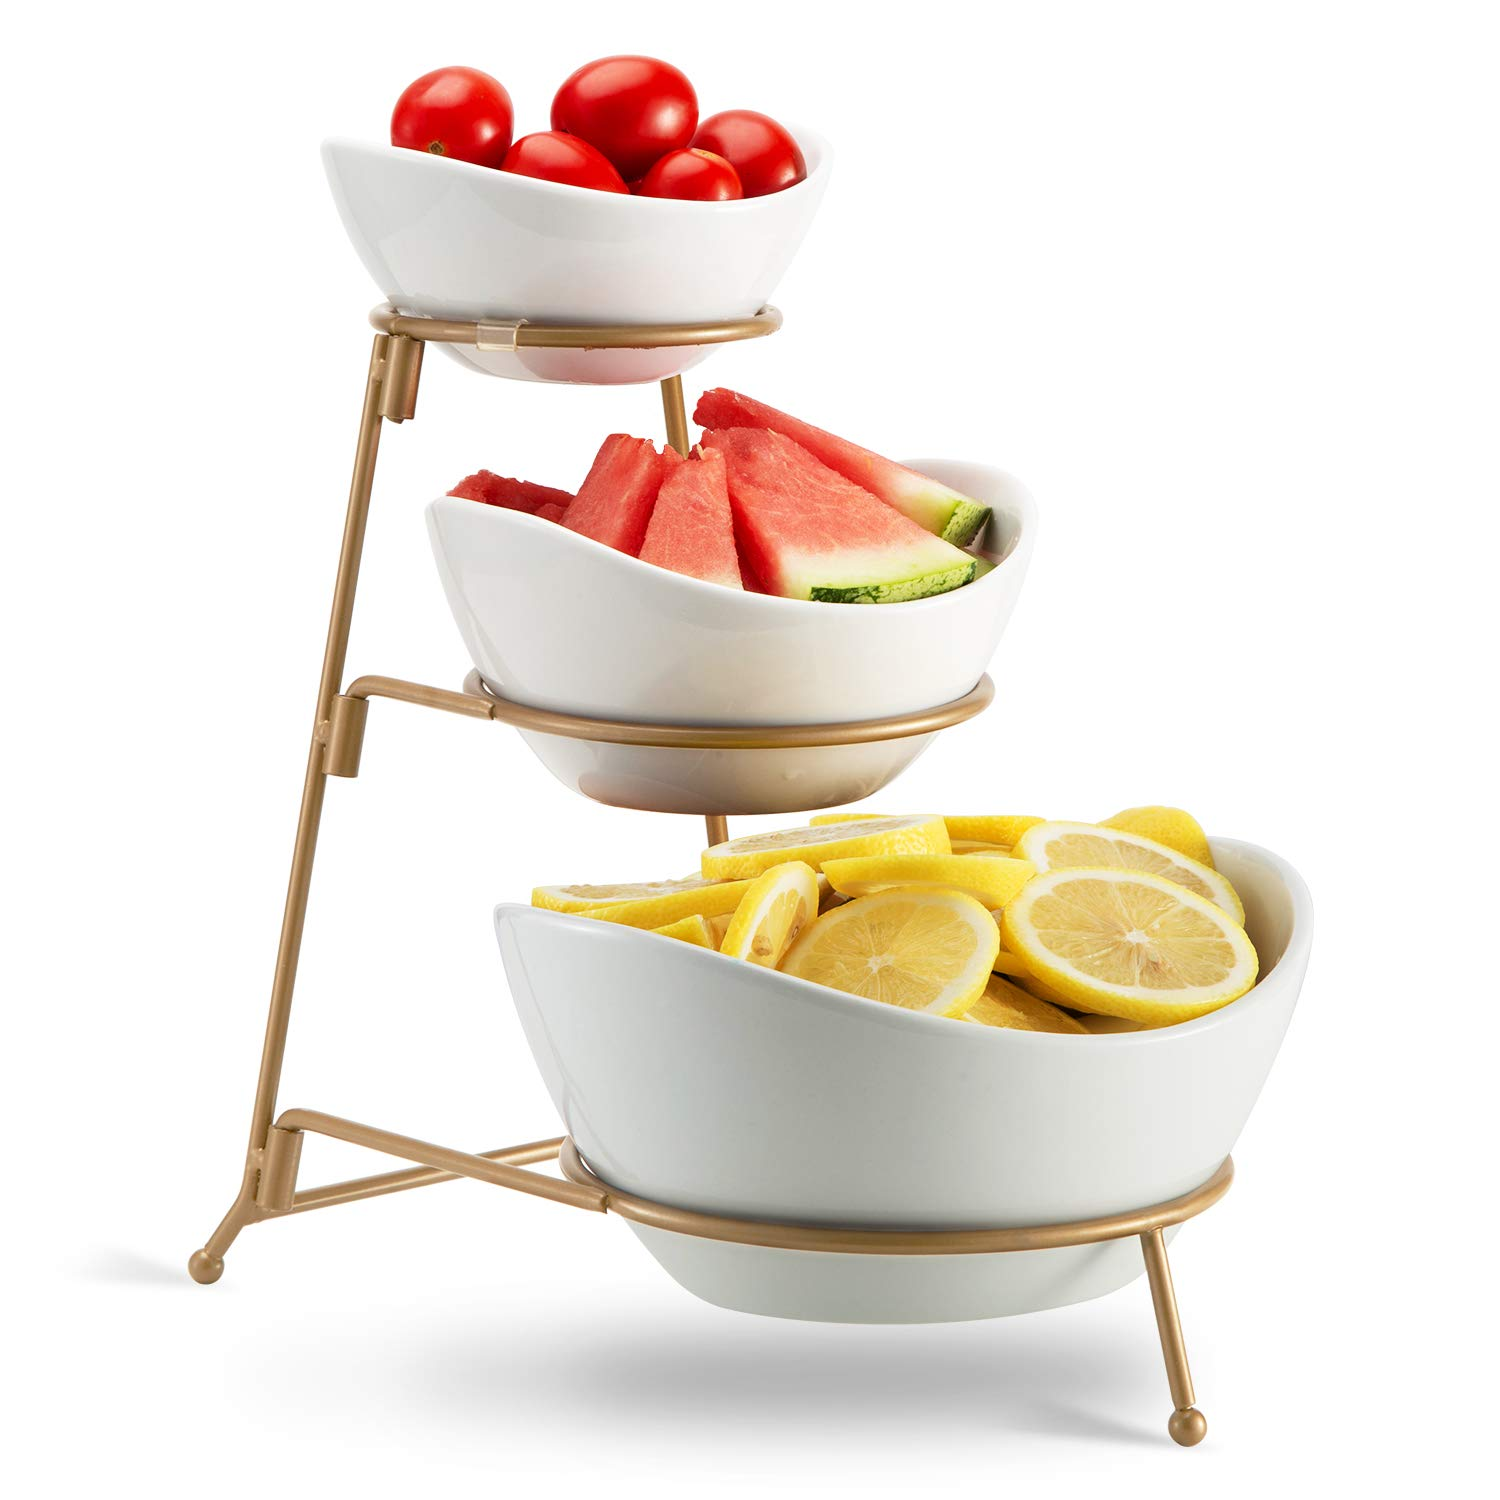 3 Tier Oval Bowl Set with Metal Rack,HabiLife Three Ceramic Fruit Bowl Serving - Tiered Serving Stand - Dessert Appetizer Cake Candy Chip Dip (Gold) by HabiLife